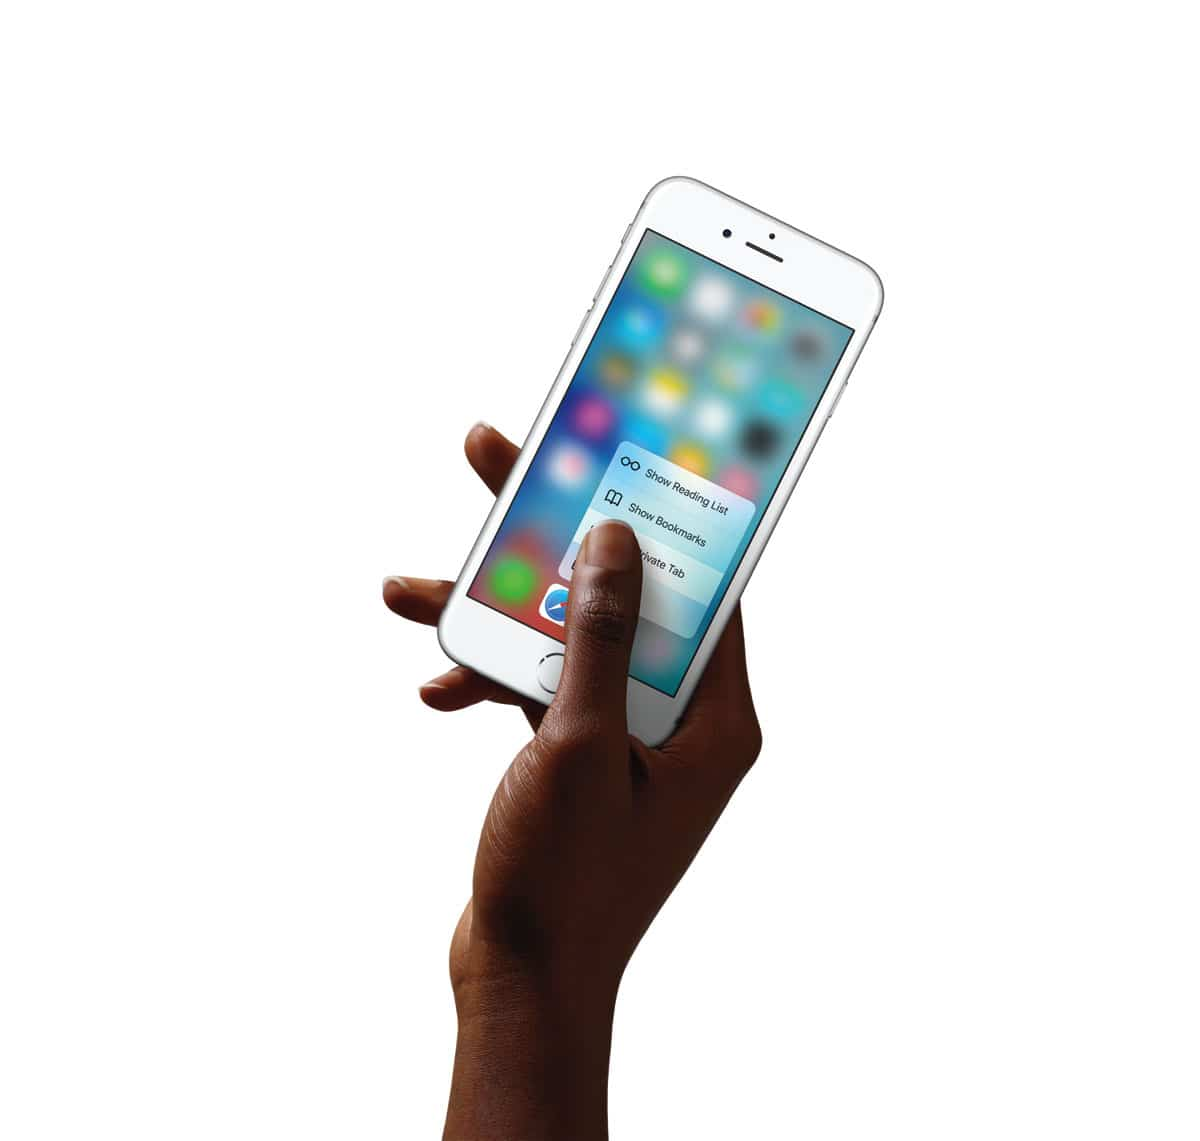 Novedades Multi-Touch, 3D Touch para iPhone6s